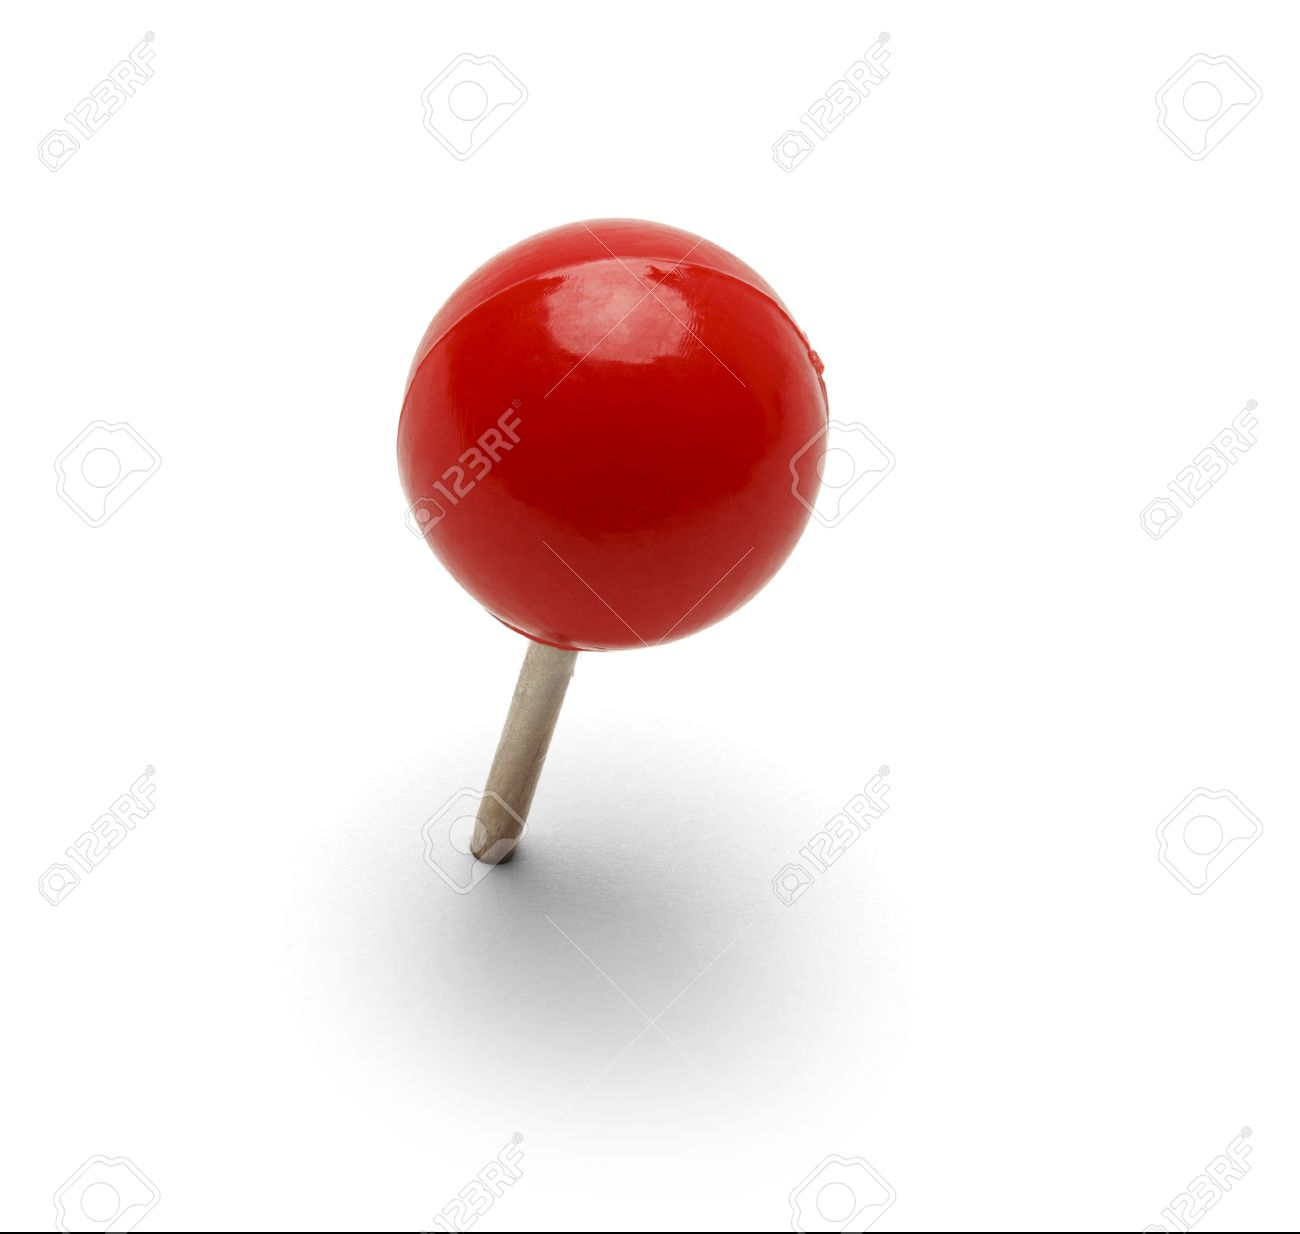 Round Red Thumb Tack Pushpin Isolated On White Background. - 38384650